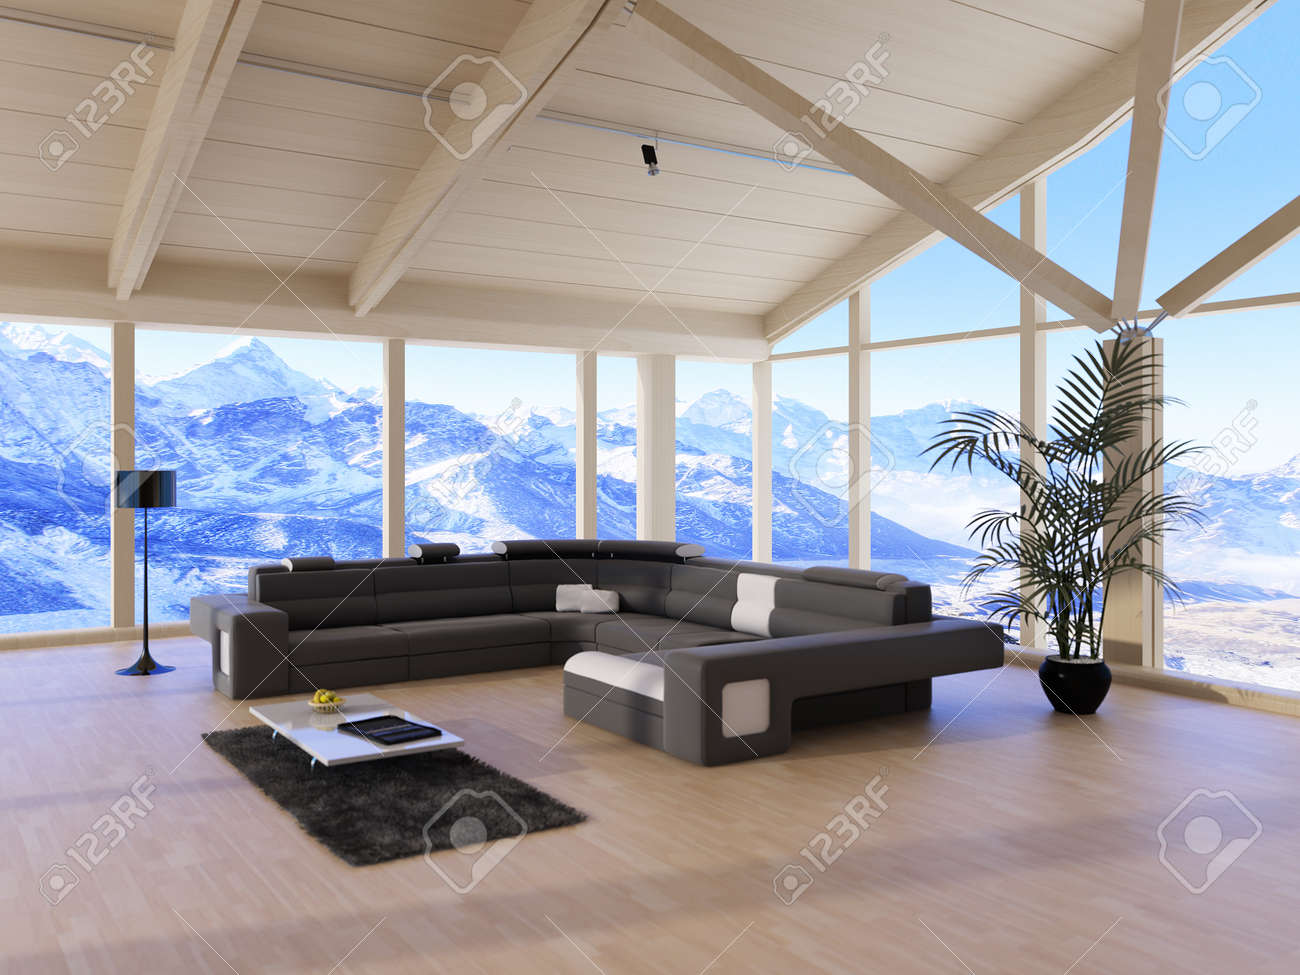 Modern Loft Living Room With Black Couch And Mountain Range View Stock  Photo   32227605